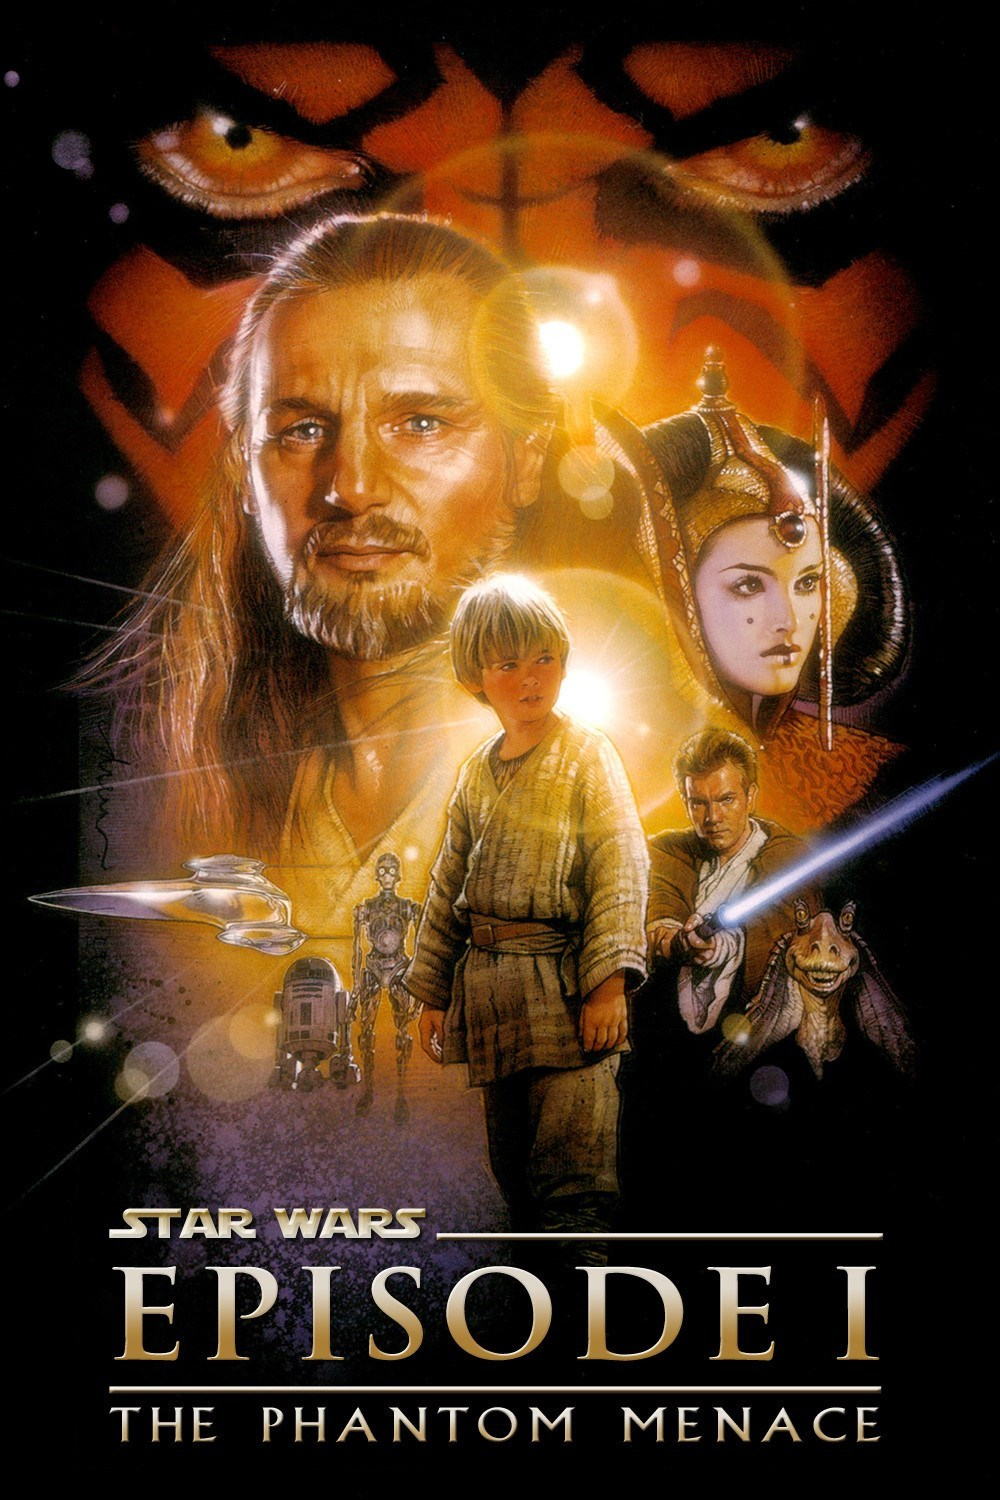 Star Wars Episode I: The Phantom Menace 1999